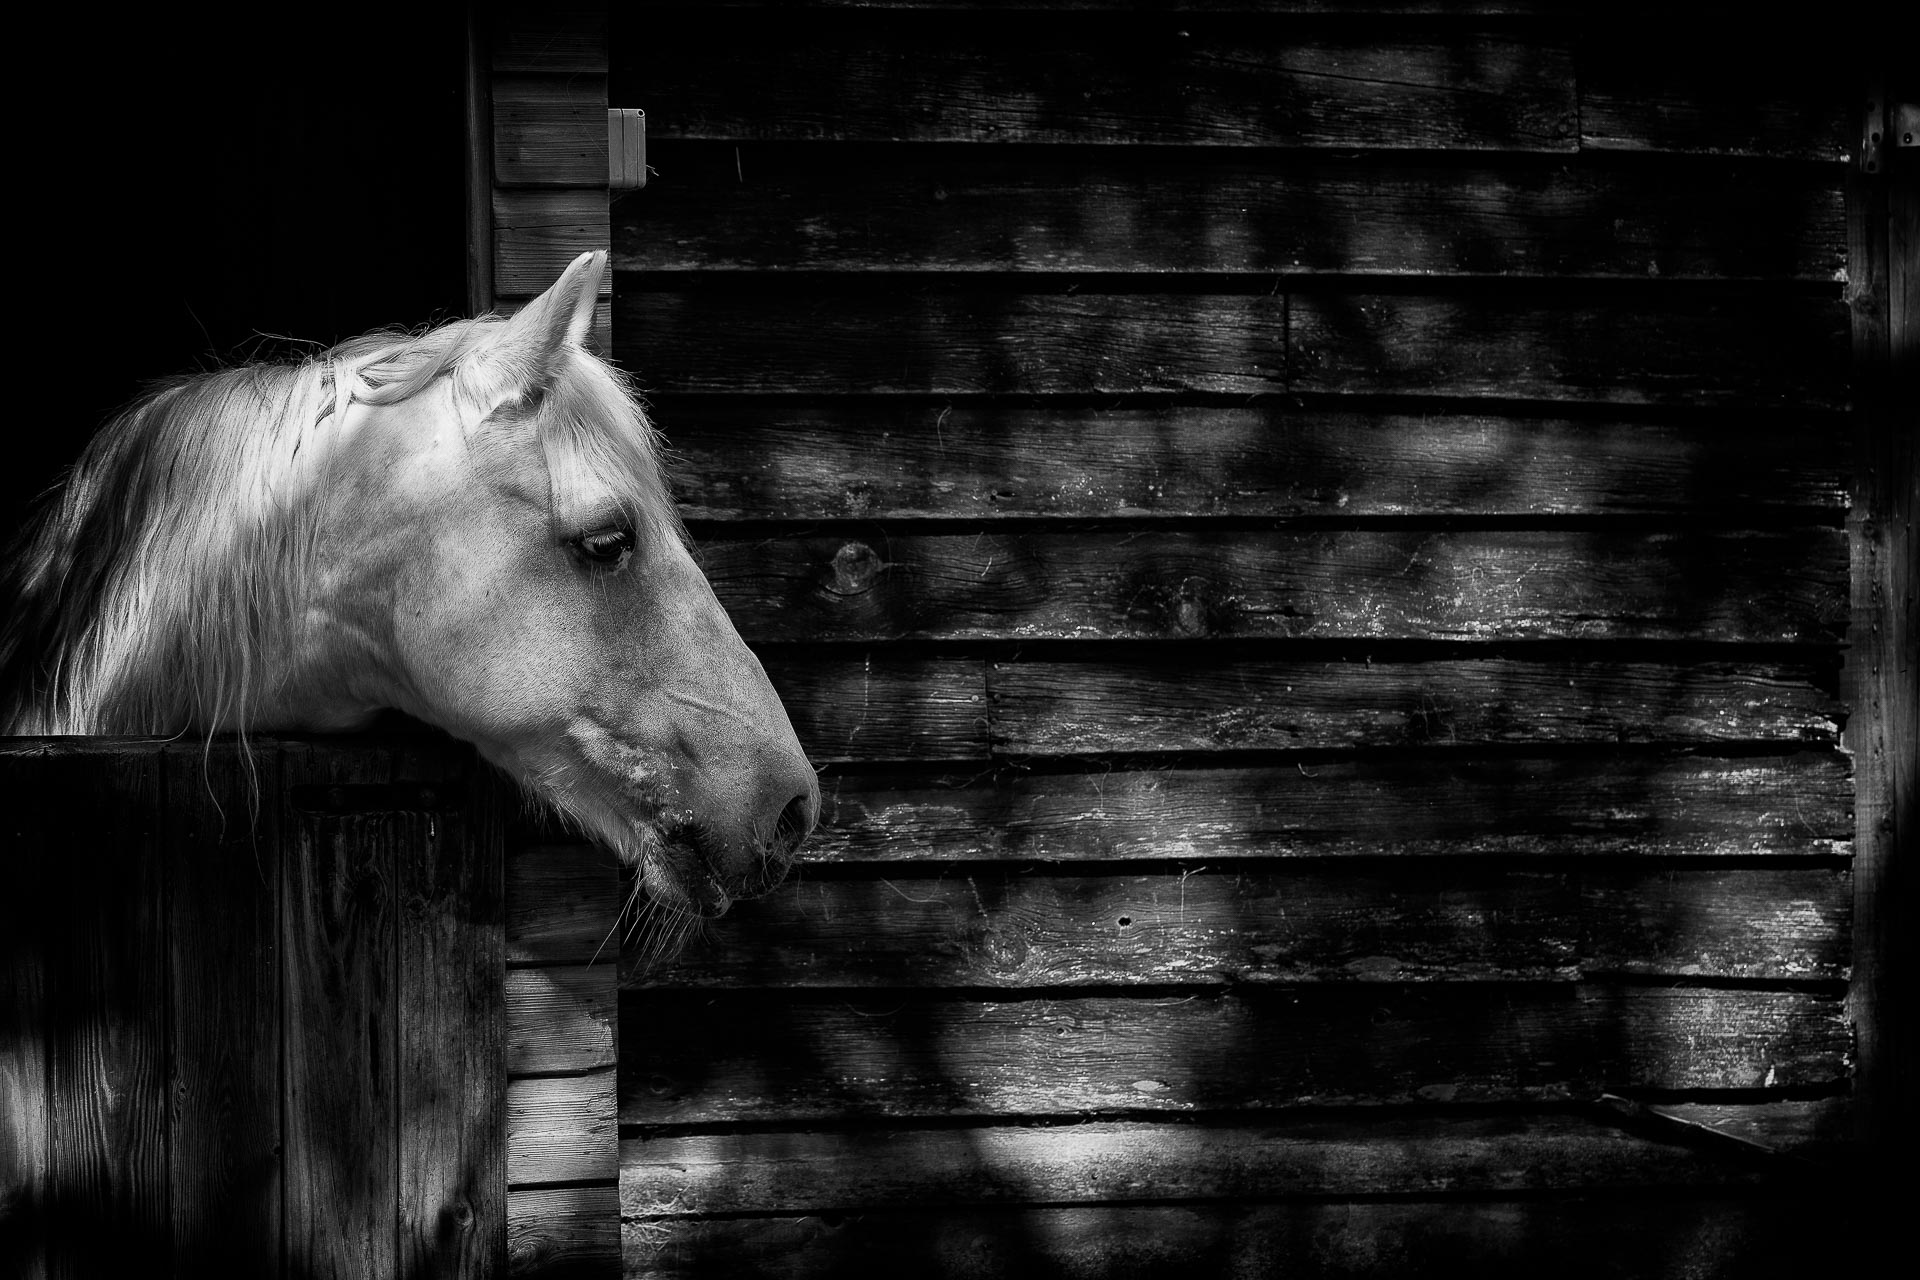 Beautiful horse in a stable in black and white